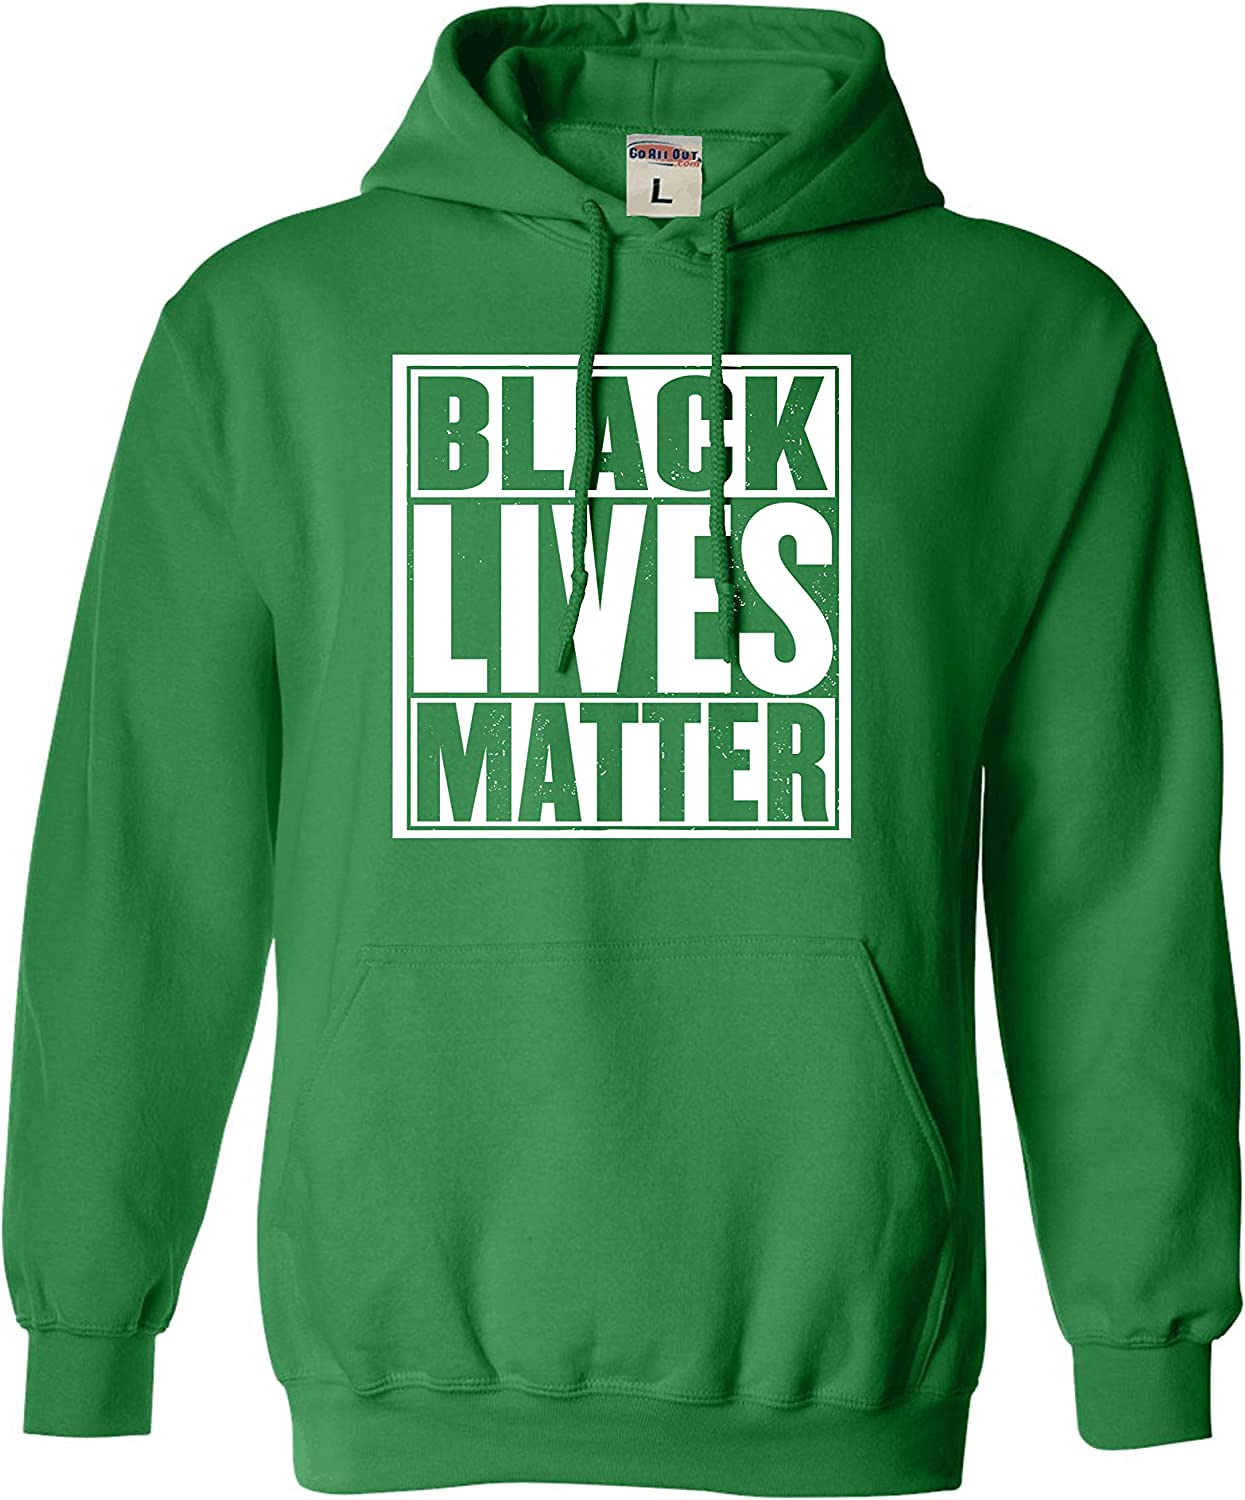 Go All Out Adult Black Lives Matter Sweatshirt Hoodie